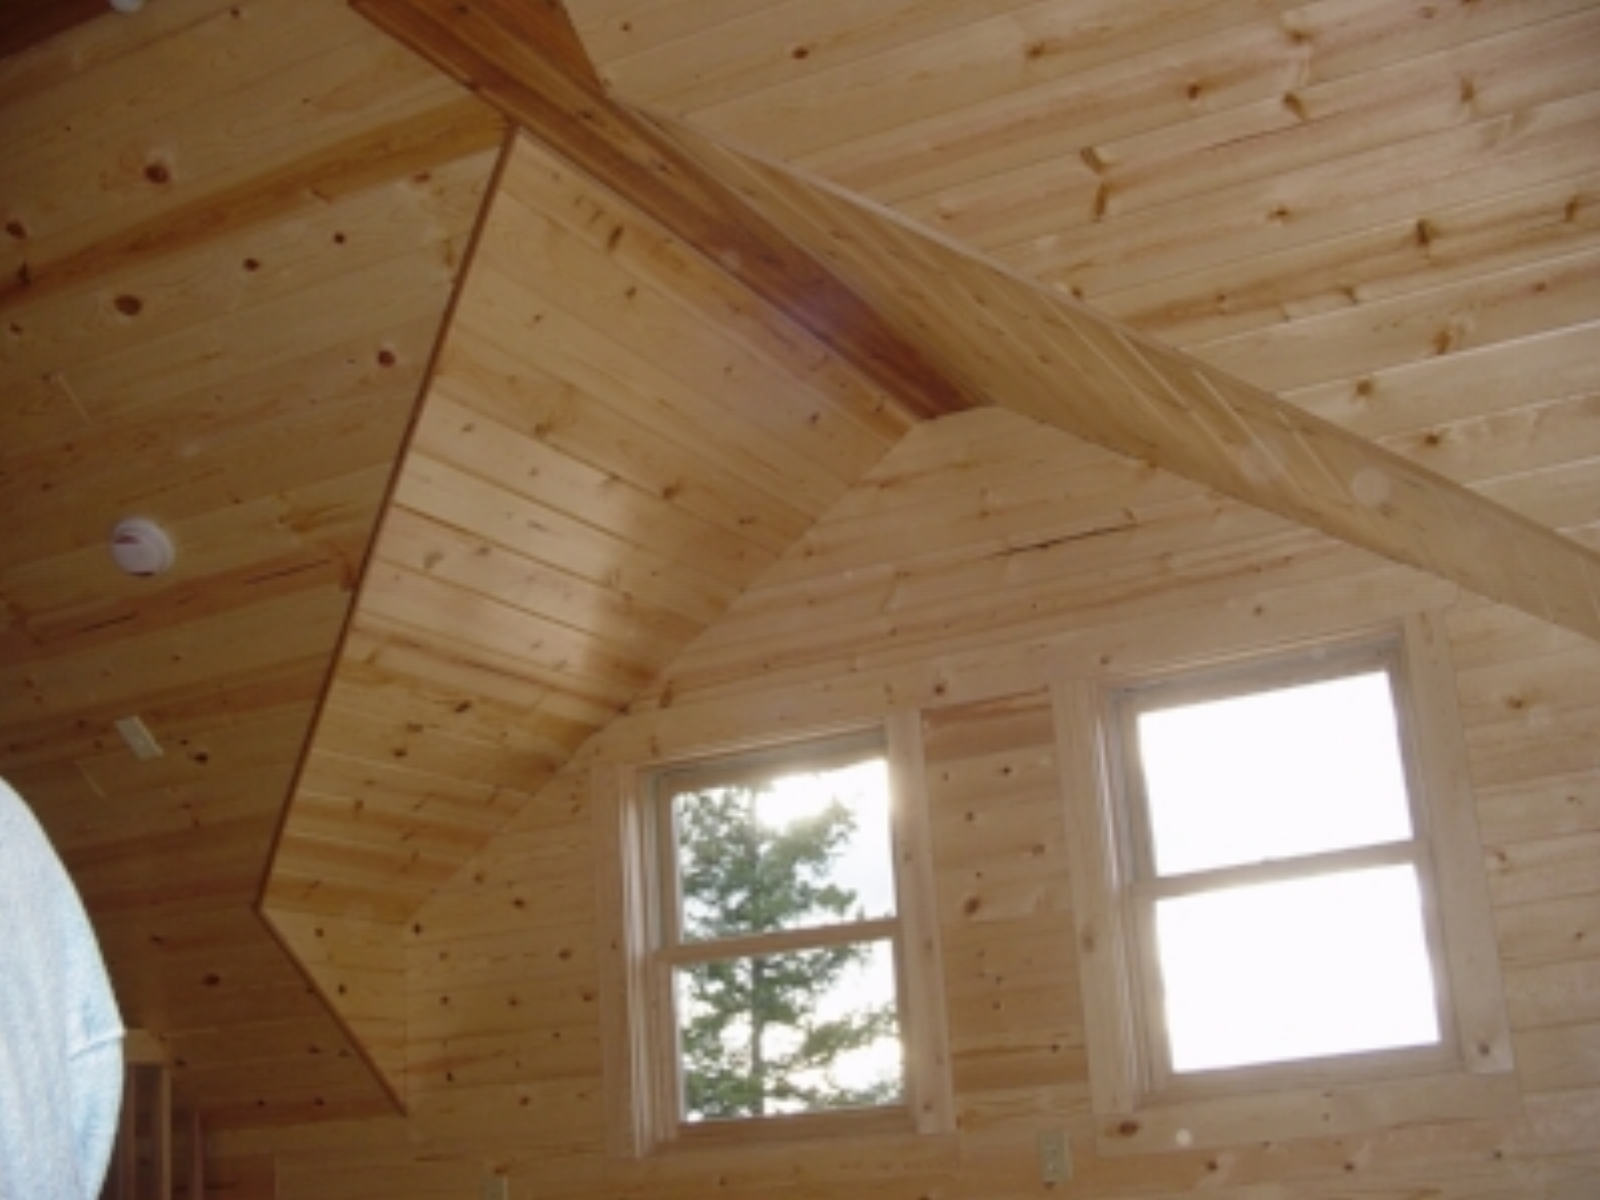 Grizzly dormer interior.JPG